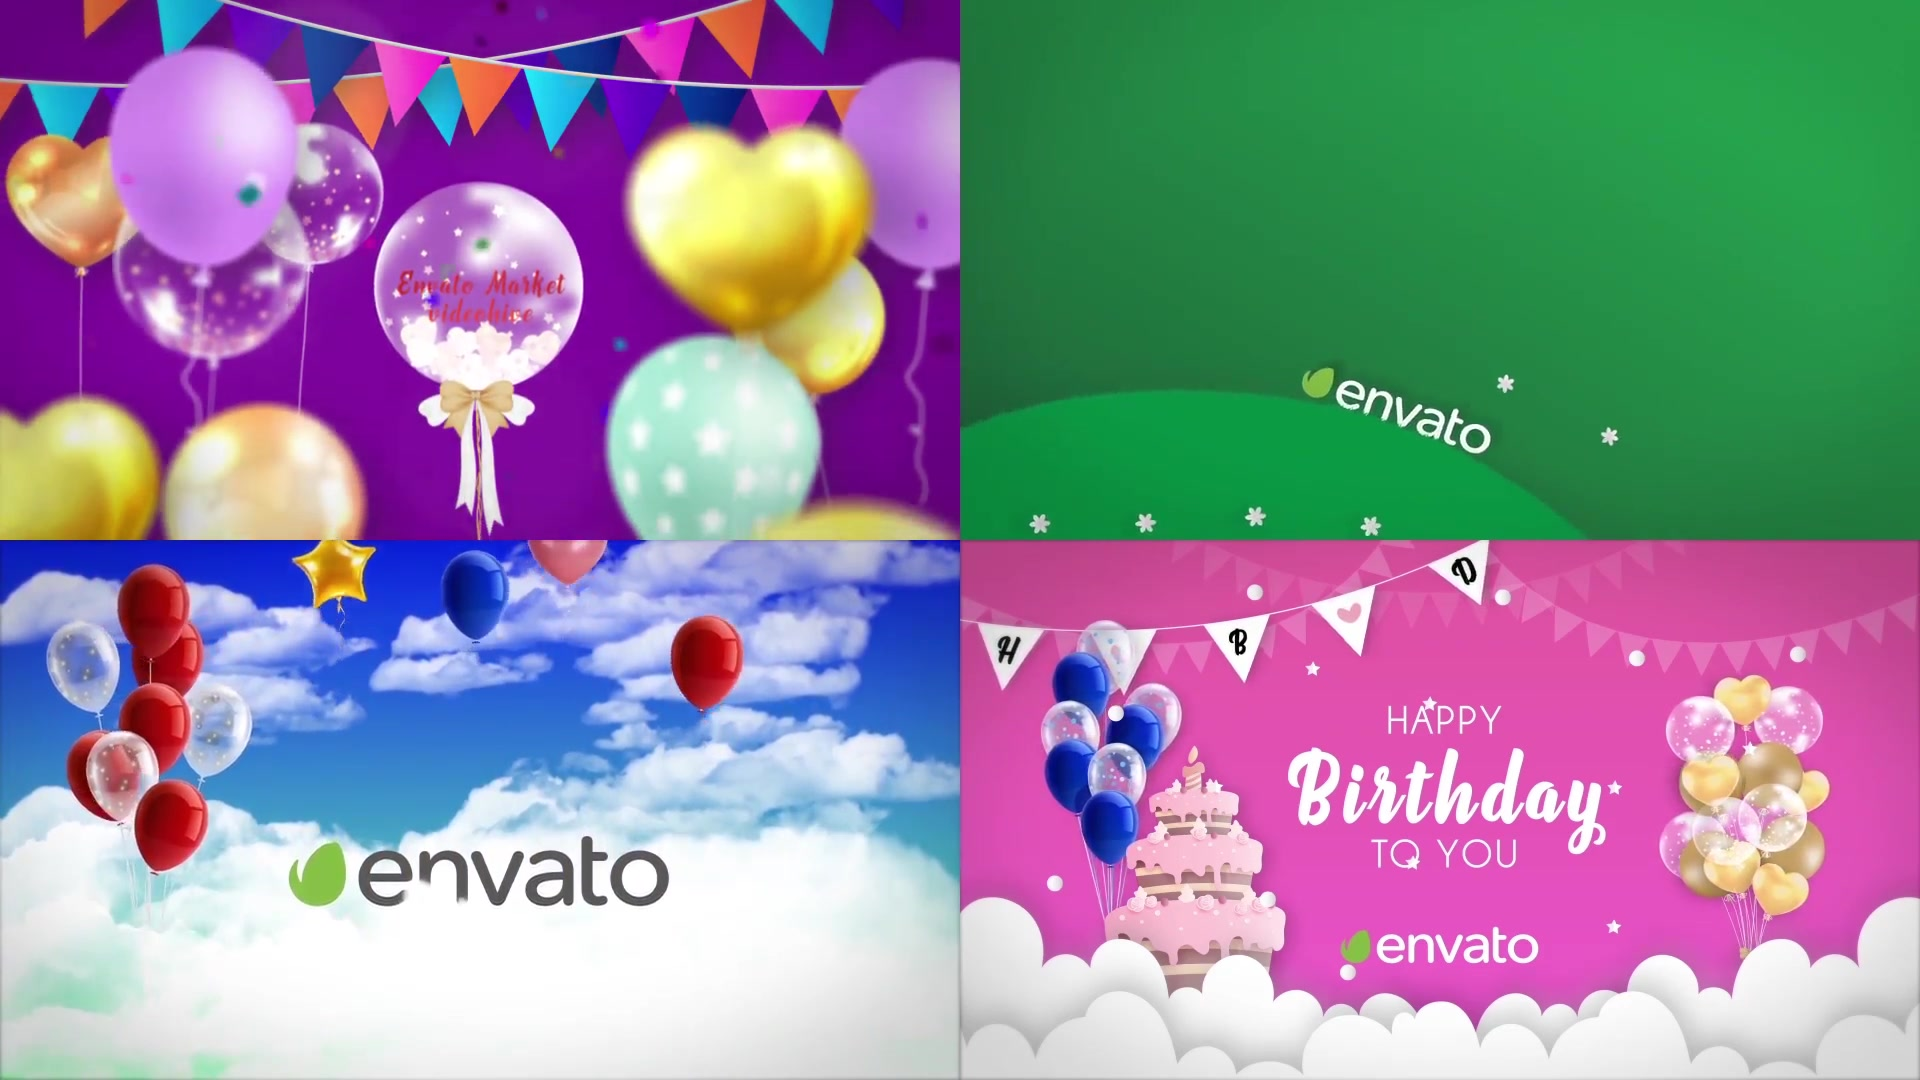 Happy Birthday Opener Videohive 31642133 After Effects Image 13